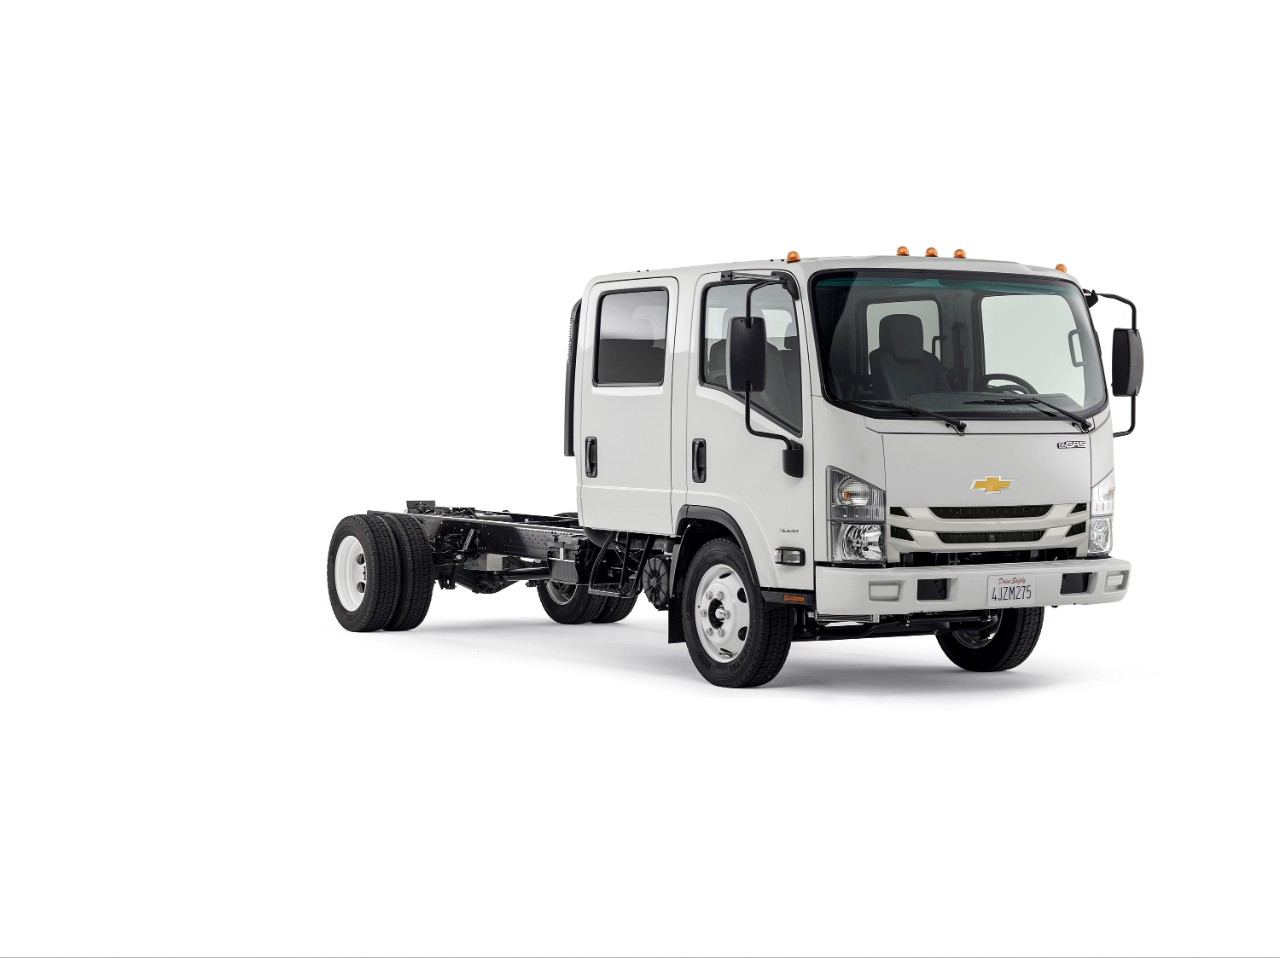 2018 gmc 4500. Beautiful 4500 GM Partners With Isuzu For Low Cab Forward Chevy Trucks  The News Wheel Intended 2018 Gmc 4500